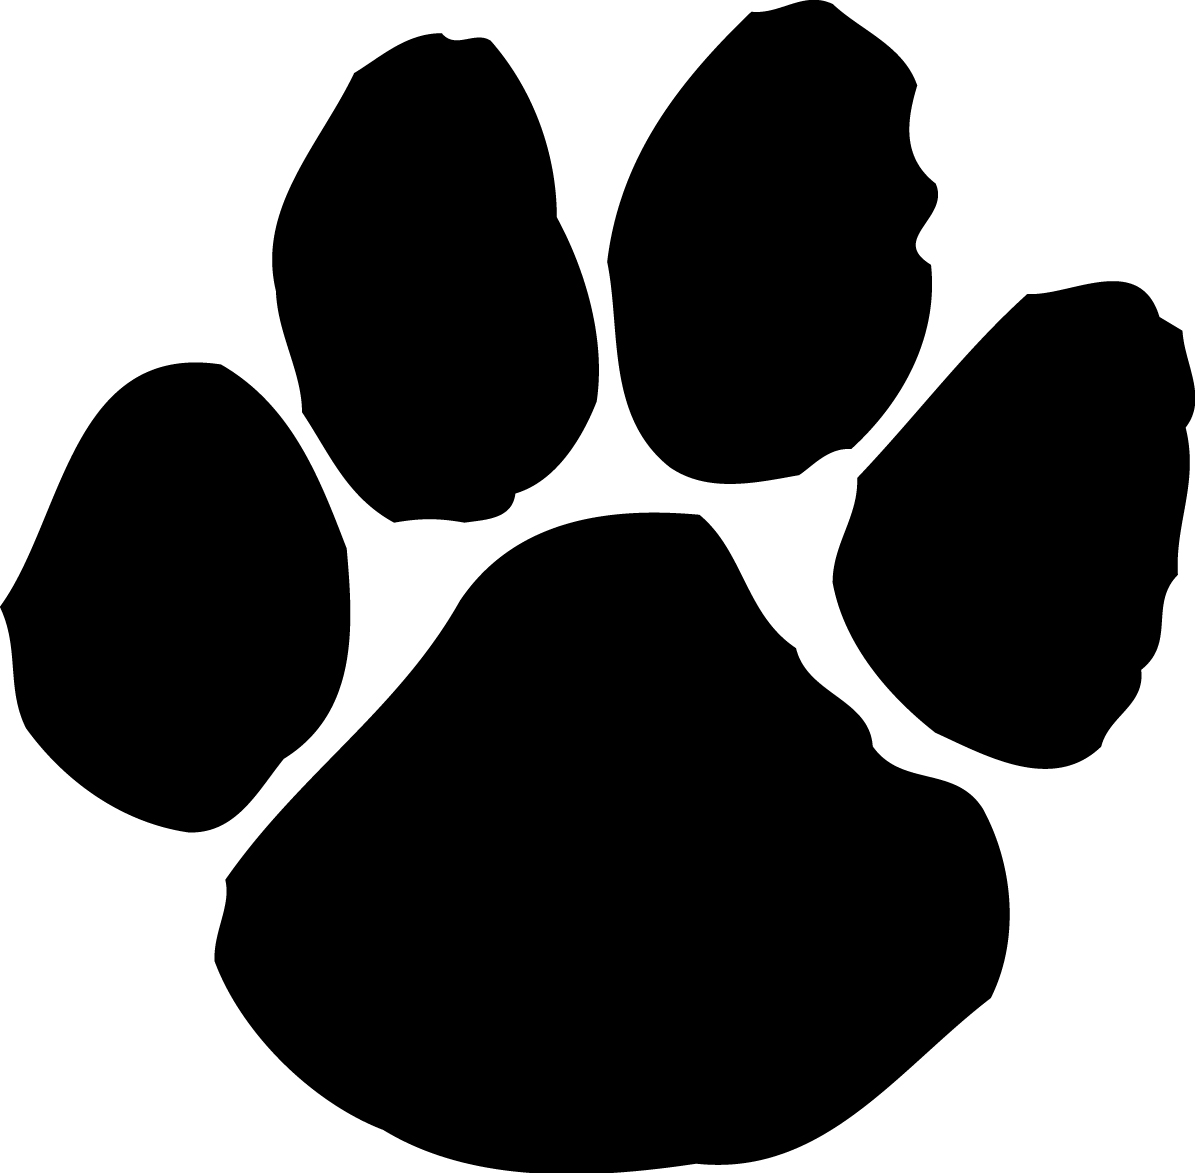 Clipart Of Dog Paws. Paw print tattoos o-Clipart Of Dog Paws. Paw print tattoos on dog paw .-15